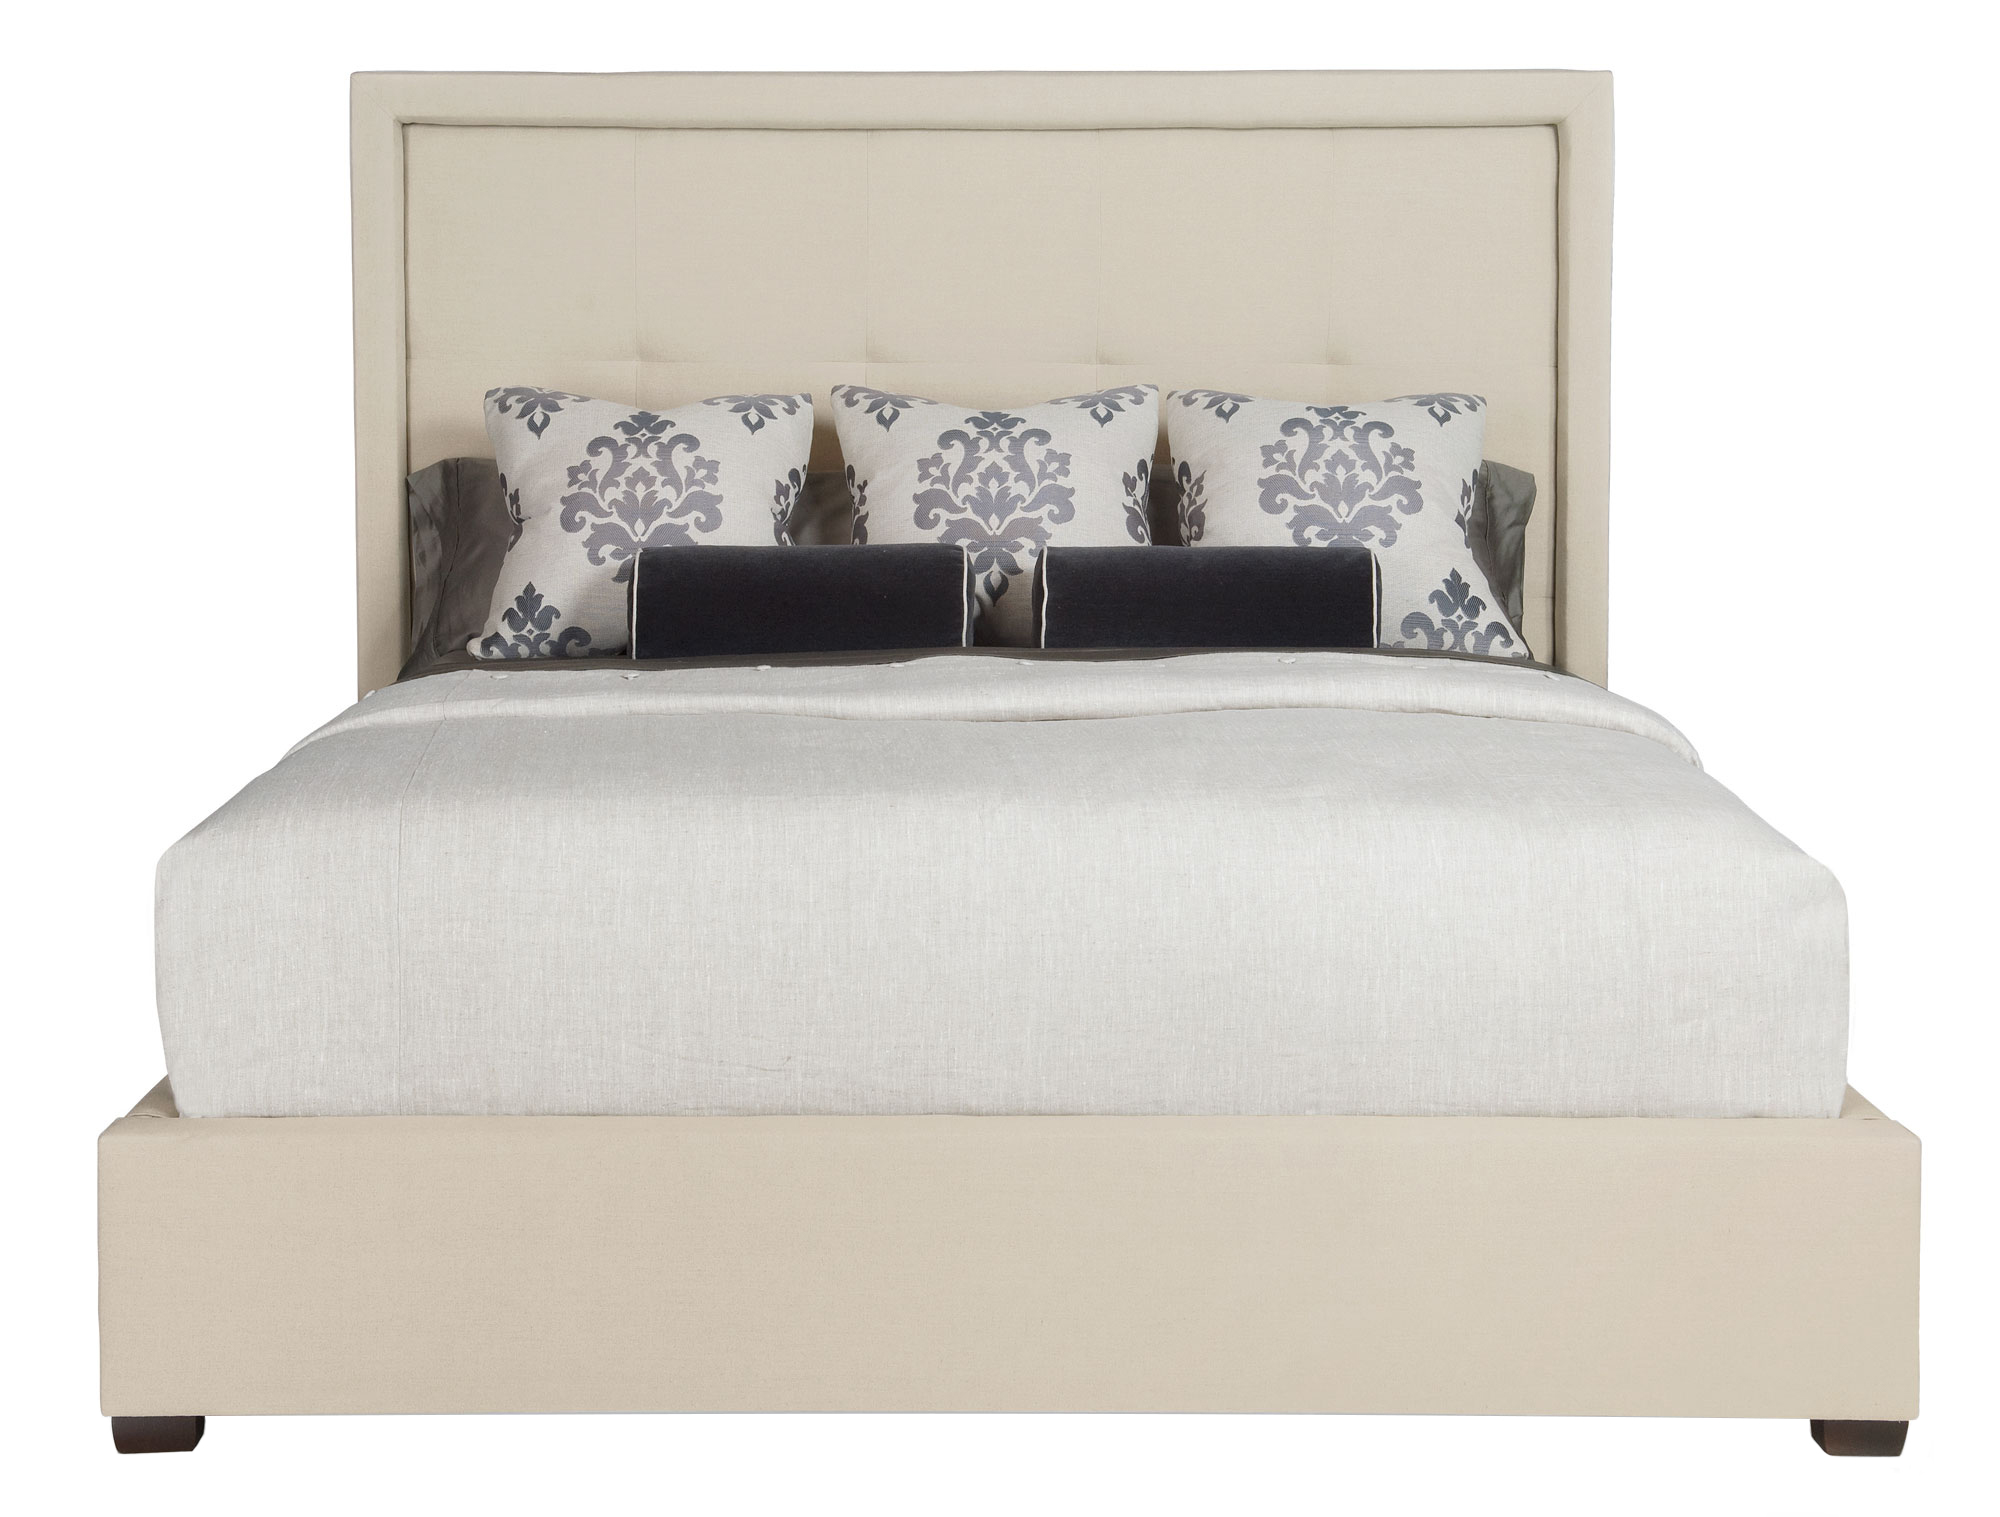 drake upholstered bed - Upholstered Bed Frame